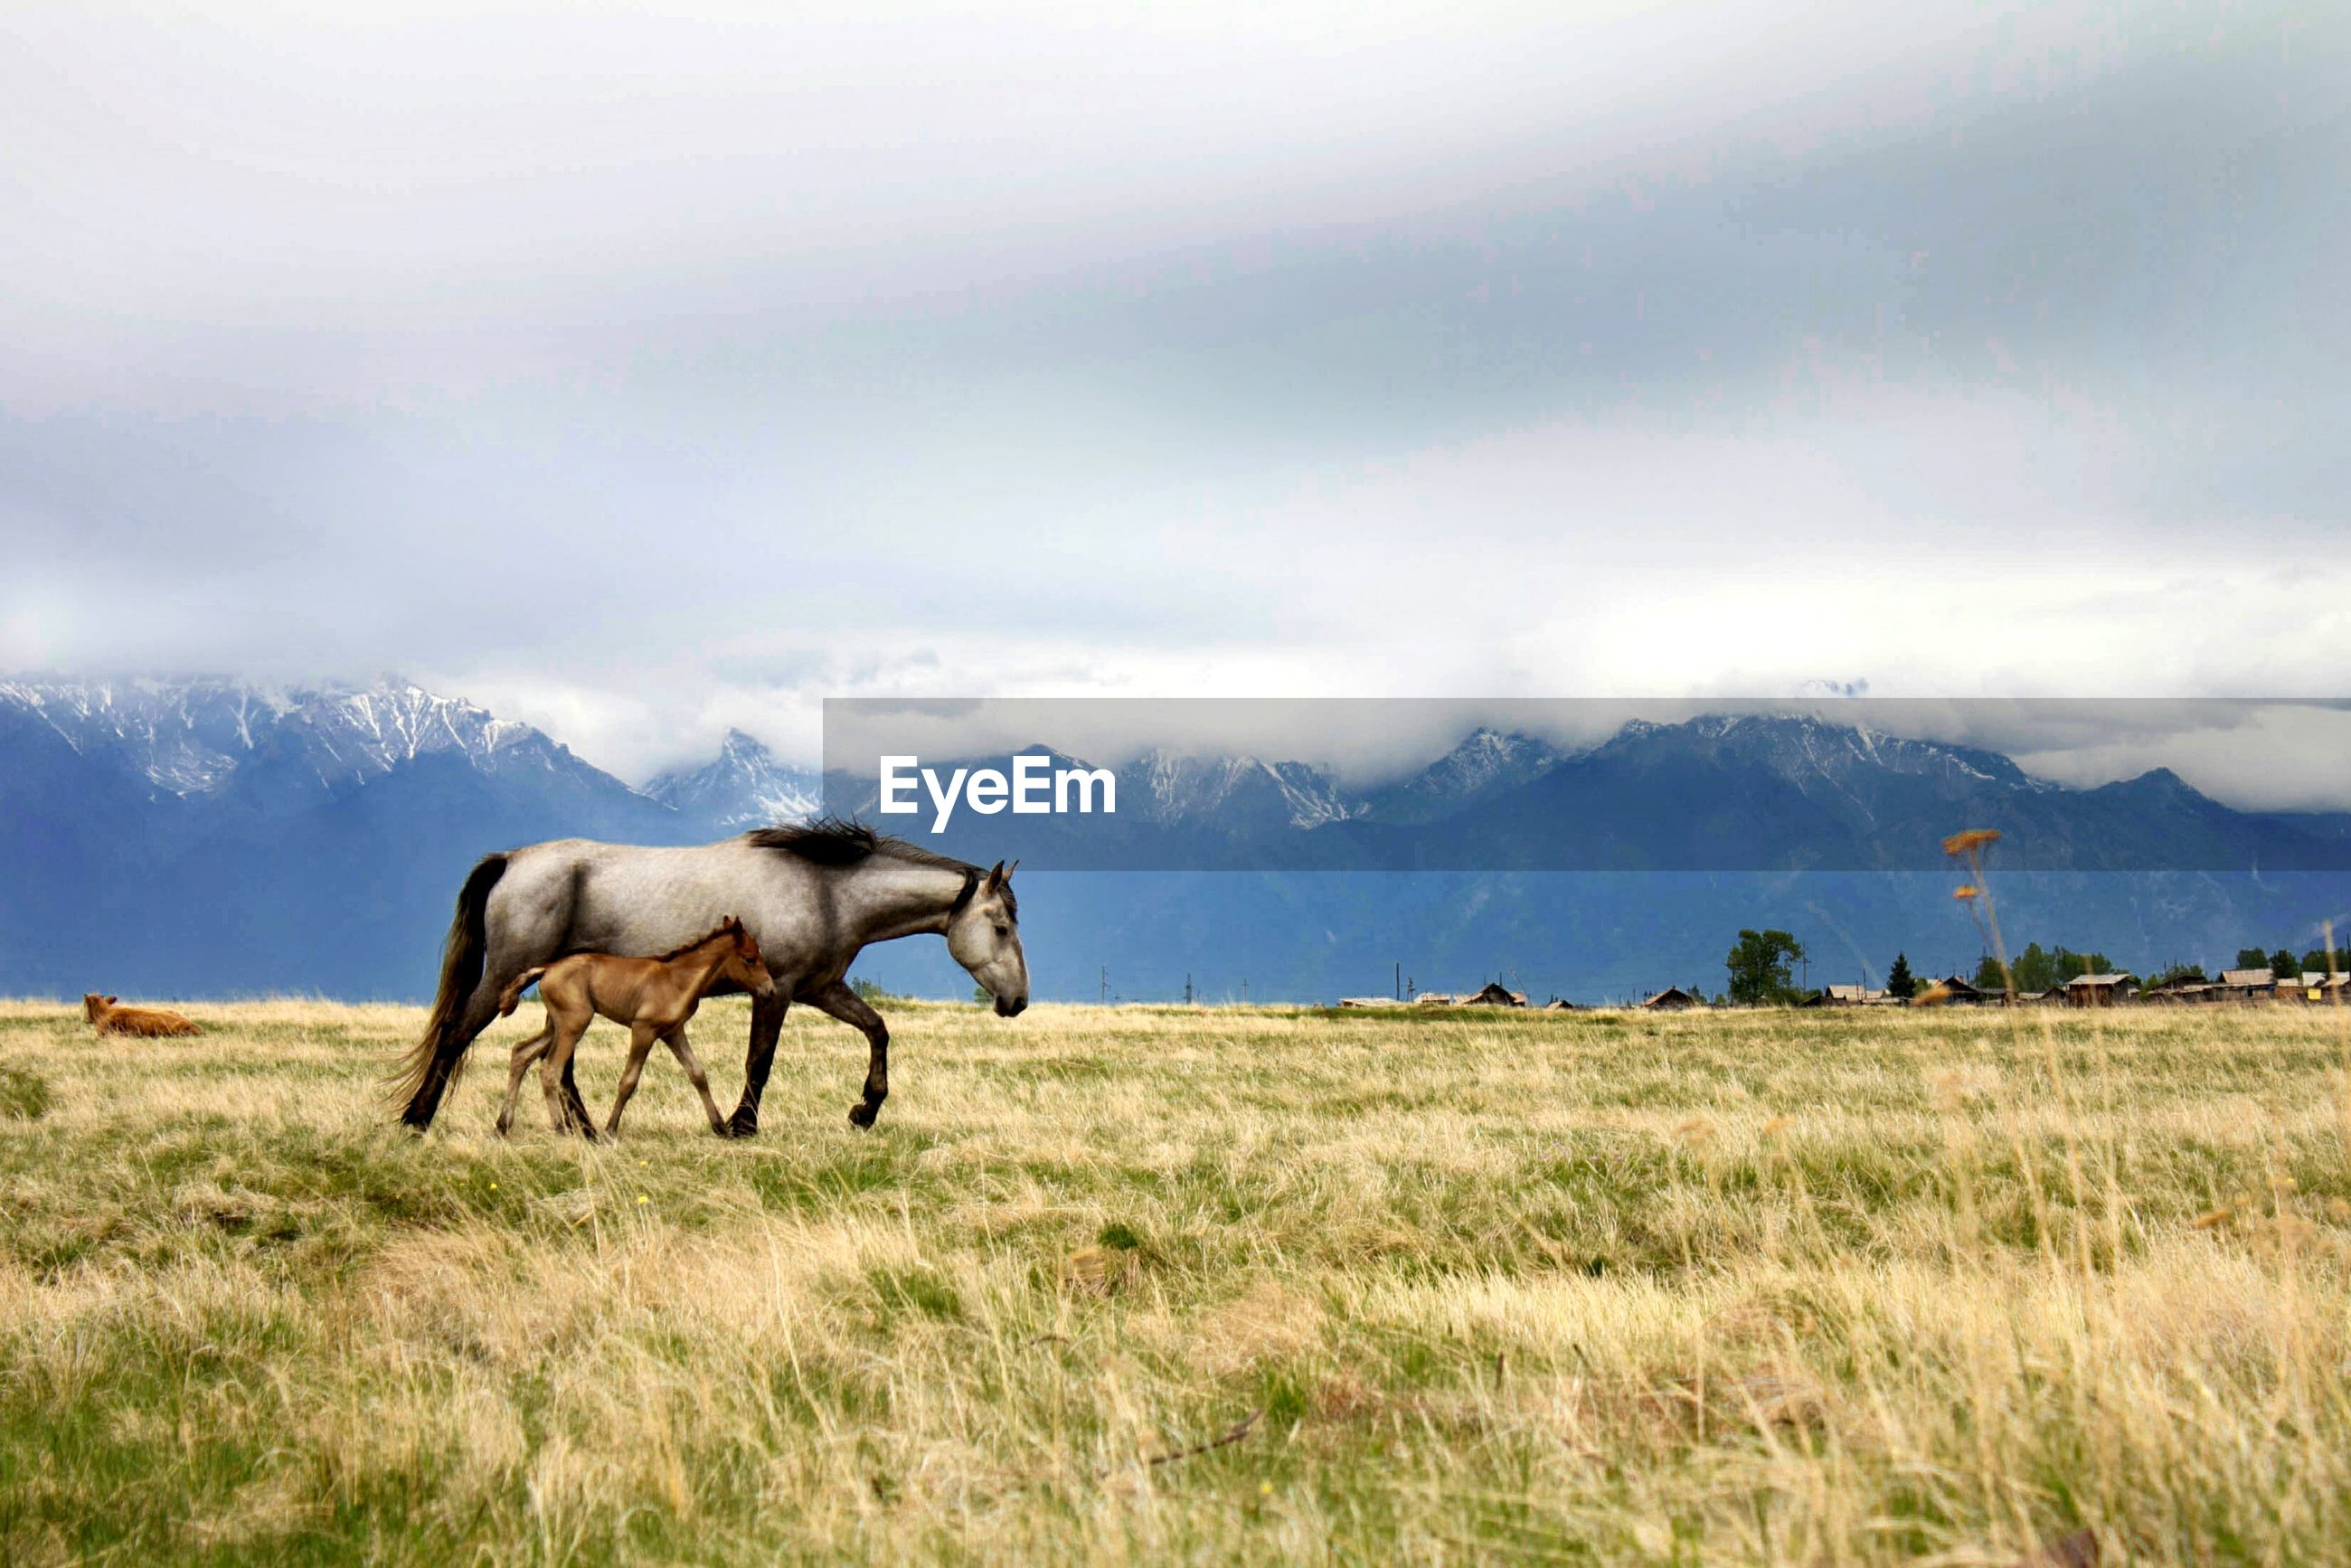 SIDE VIEW OF HORSE ON FIELD AGAINST MOUNTAIN